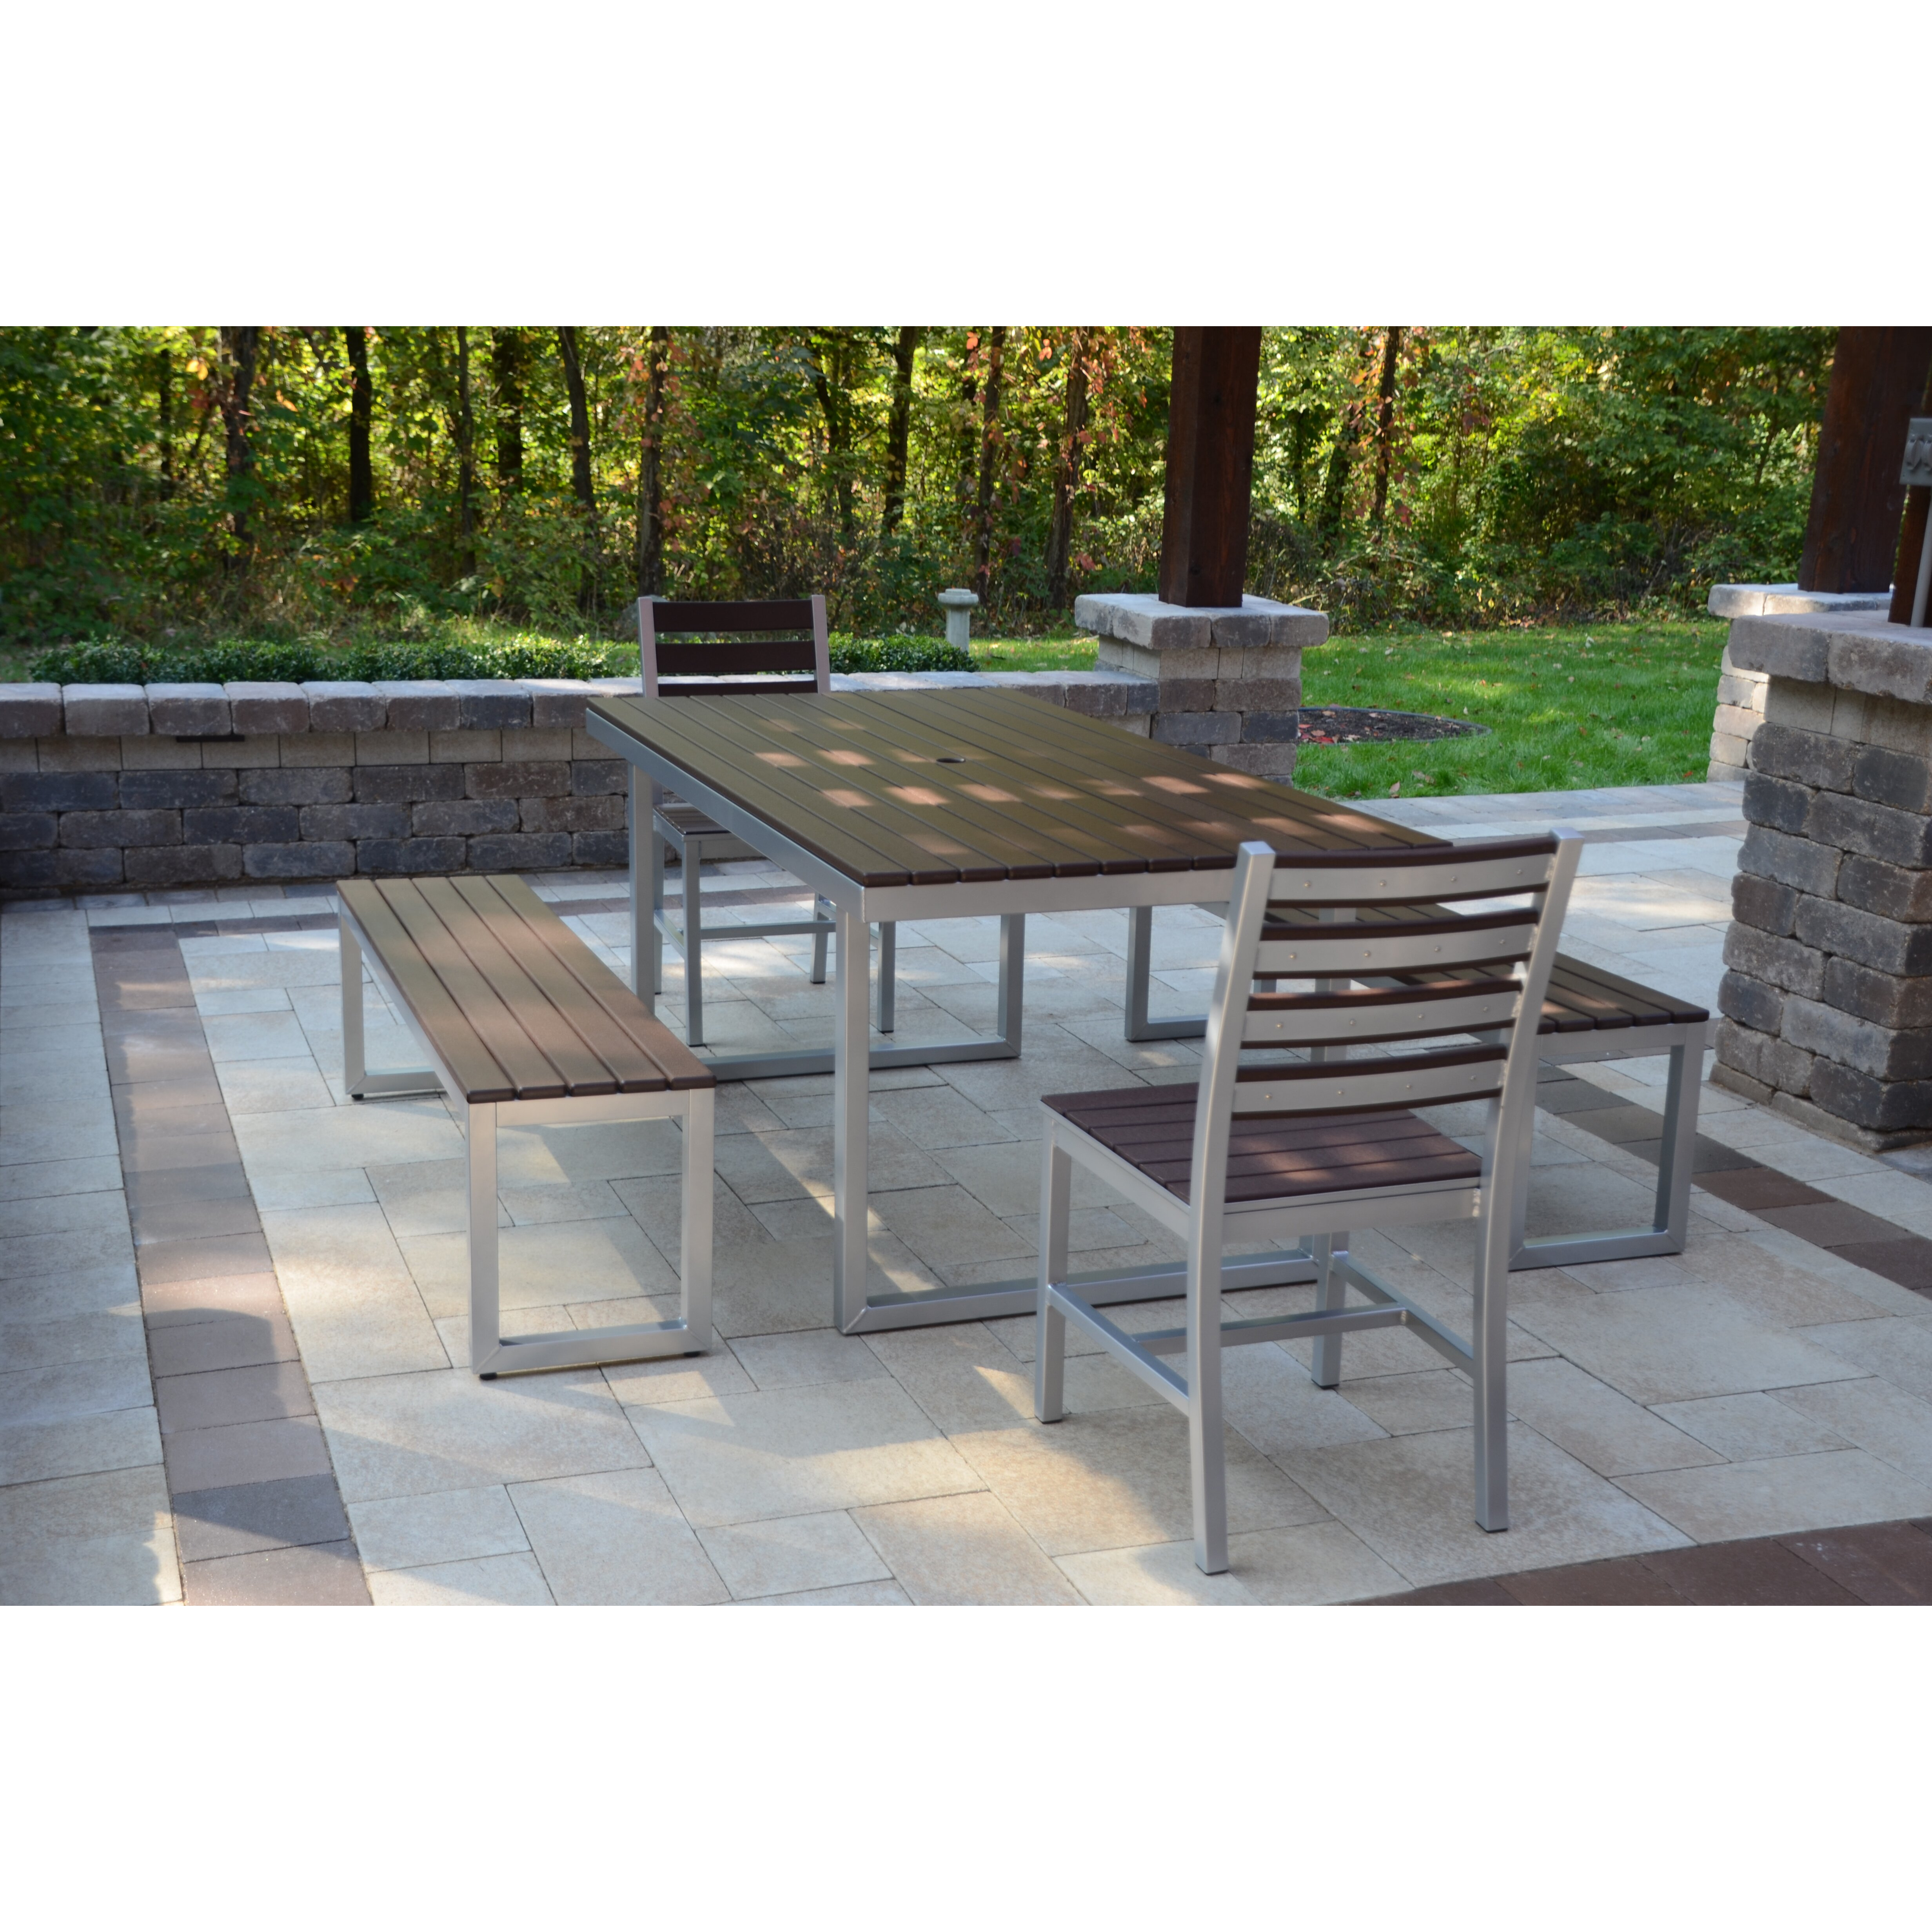 Elan Furniture Kinzie Outdoor Modern 5 Piece Dining Set Reviews Wayfair